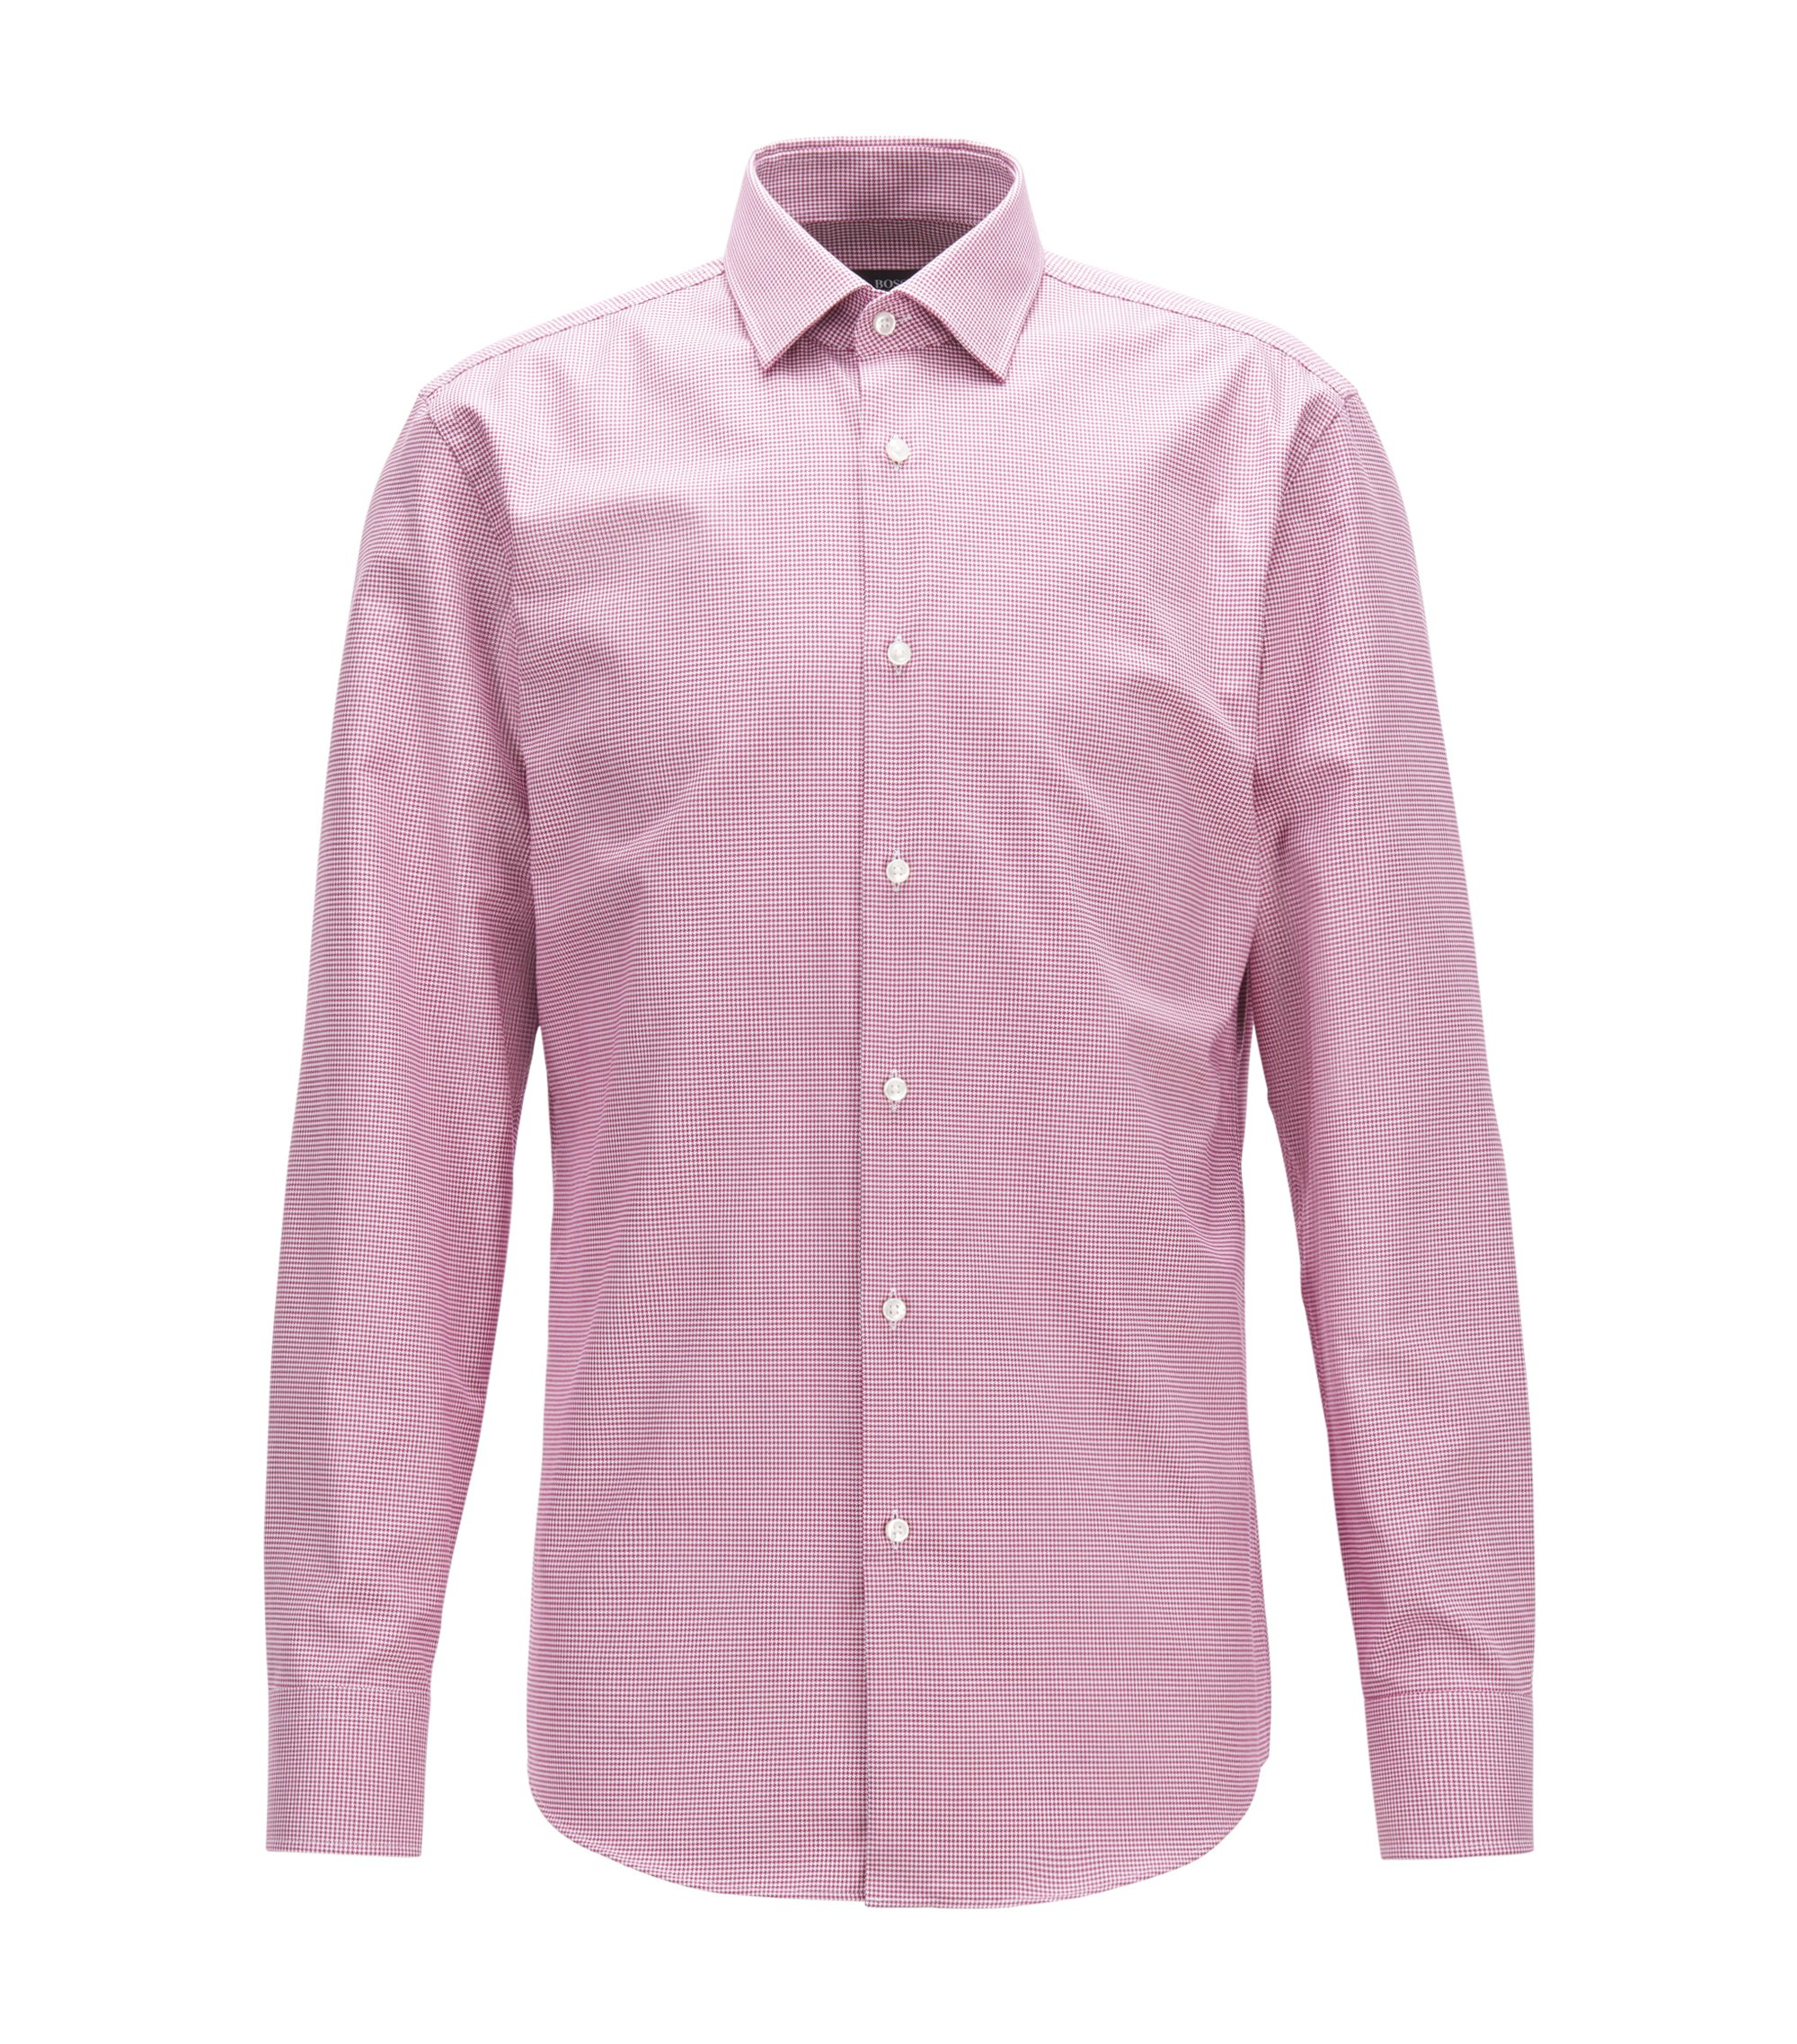 Puppytooth Cotton Dress Shirt, Slim Fit | Jenno, Dark pink